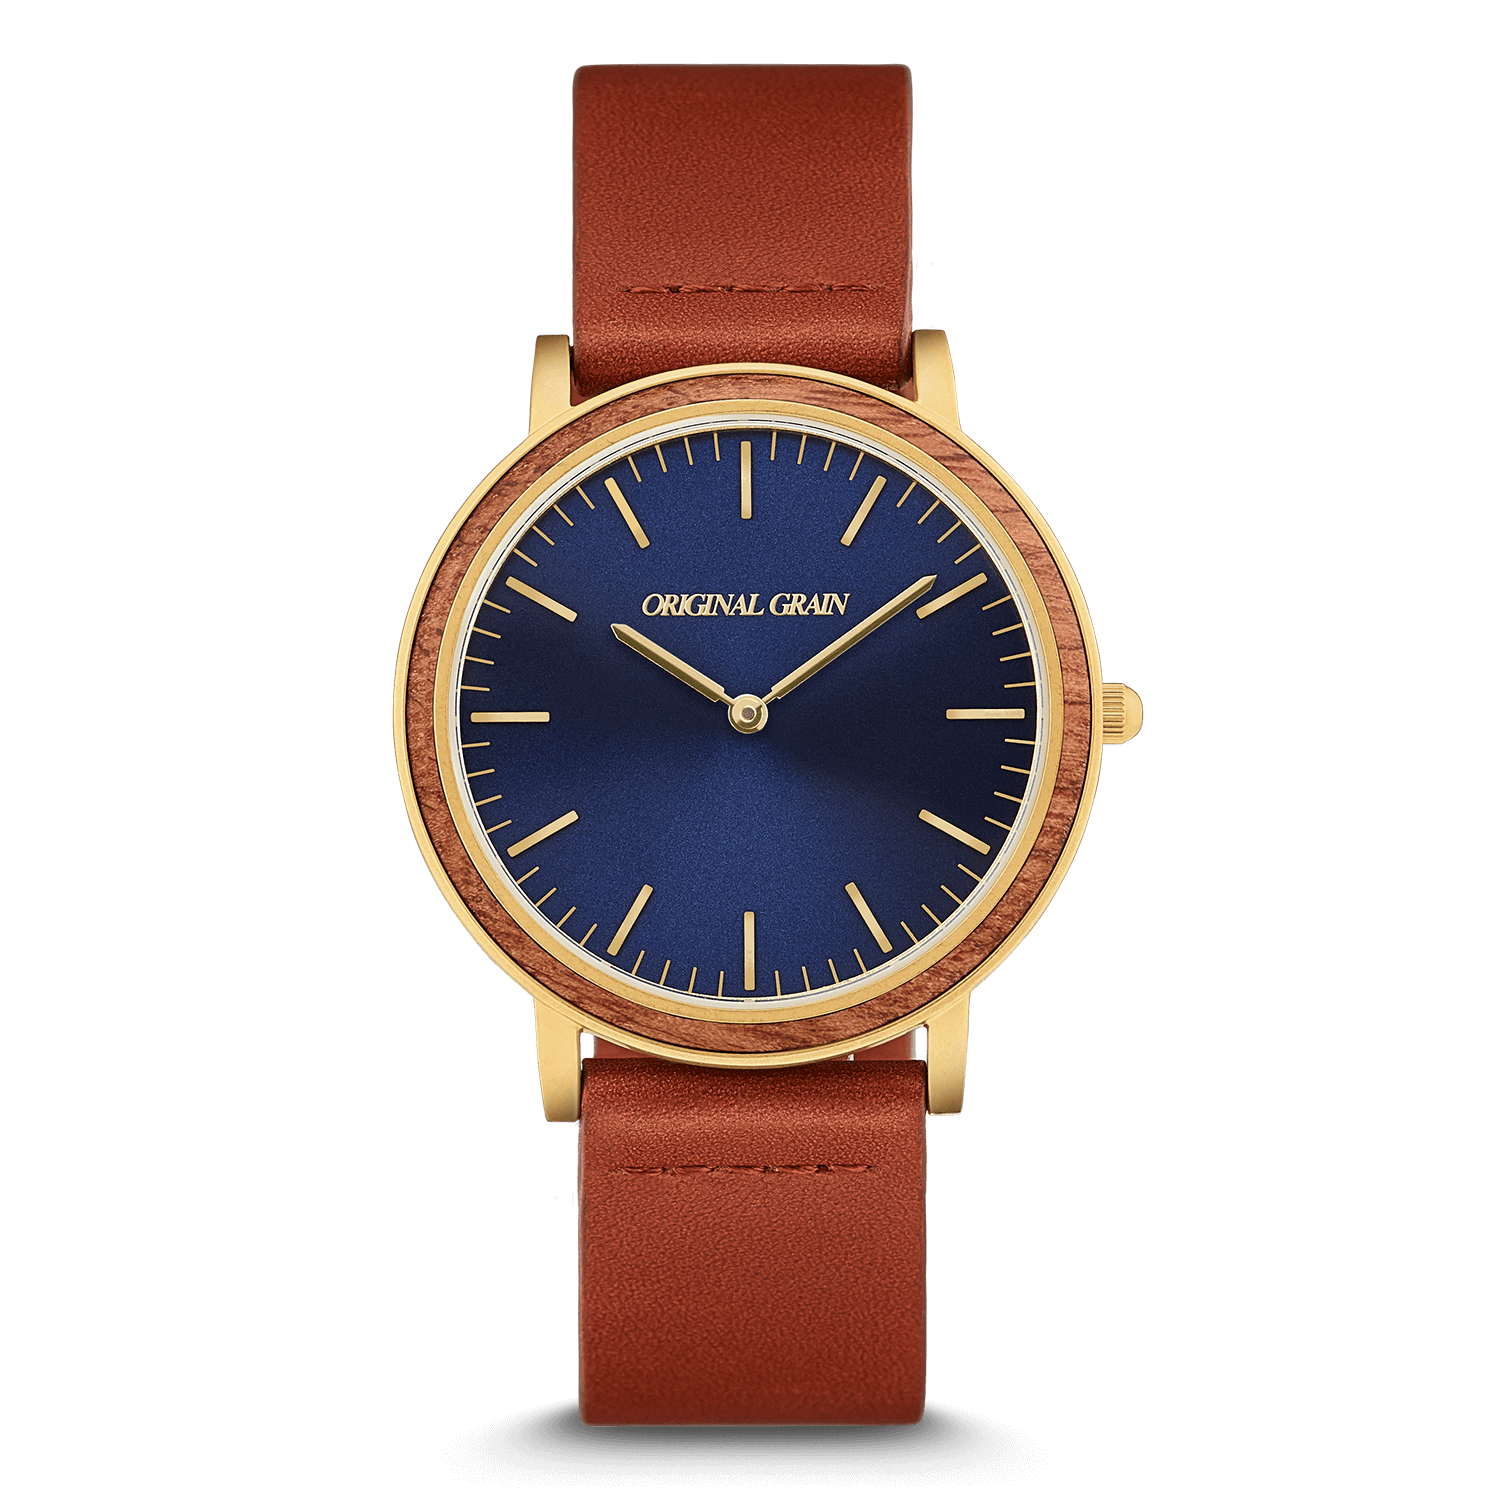 image zegarki watch matt luxury for meskie relojio masculino store wood mattupstore women vintage men watches clock quartz casual grain relogio brand up products product